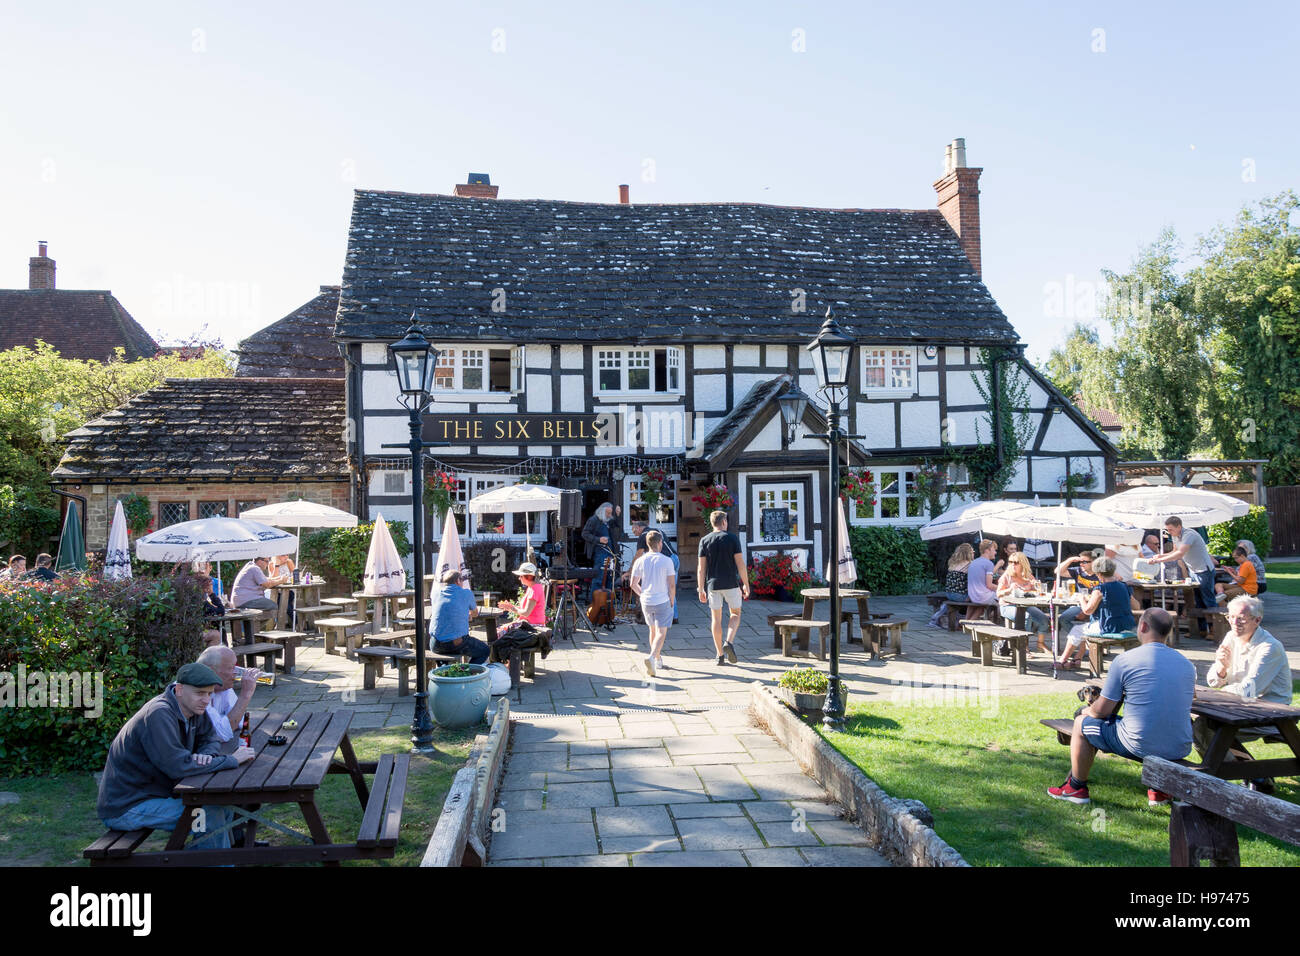 16th century The Six Bells Pub, High Street, Billingshurst, West Sussex, England, United Kingdom - Stock Image